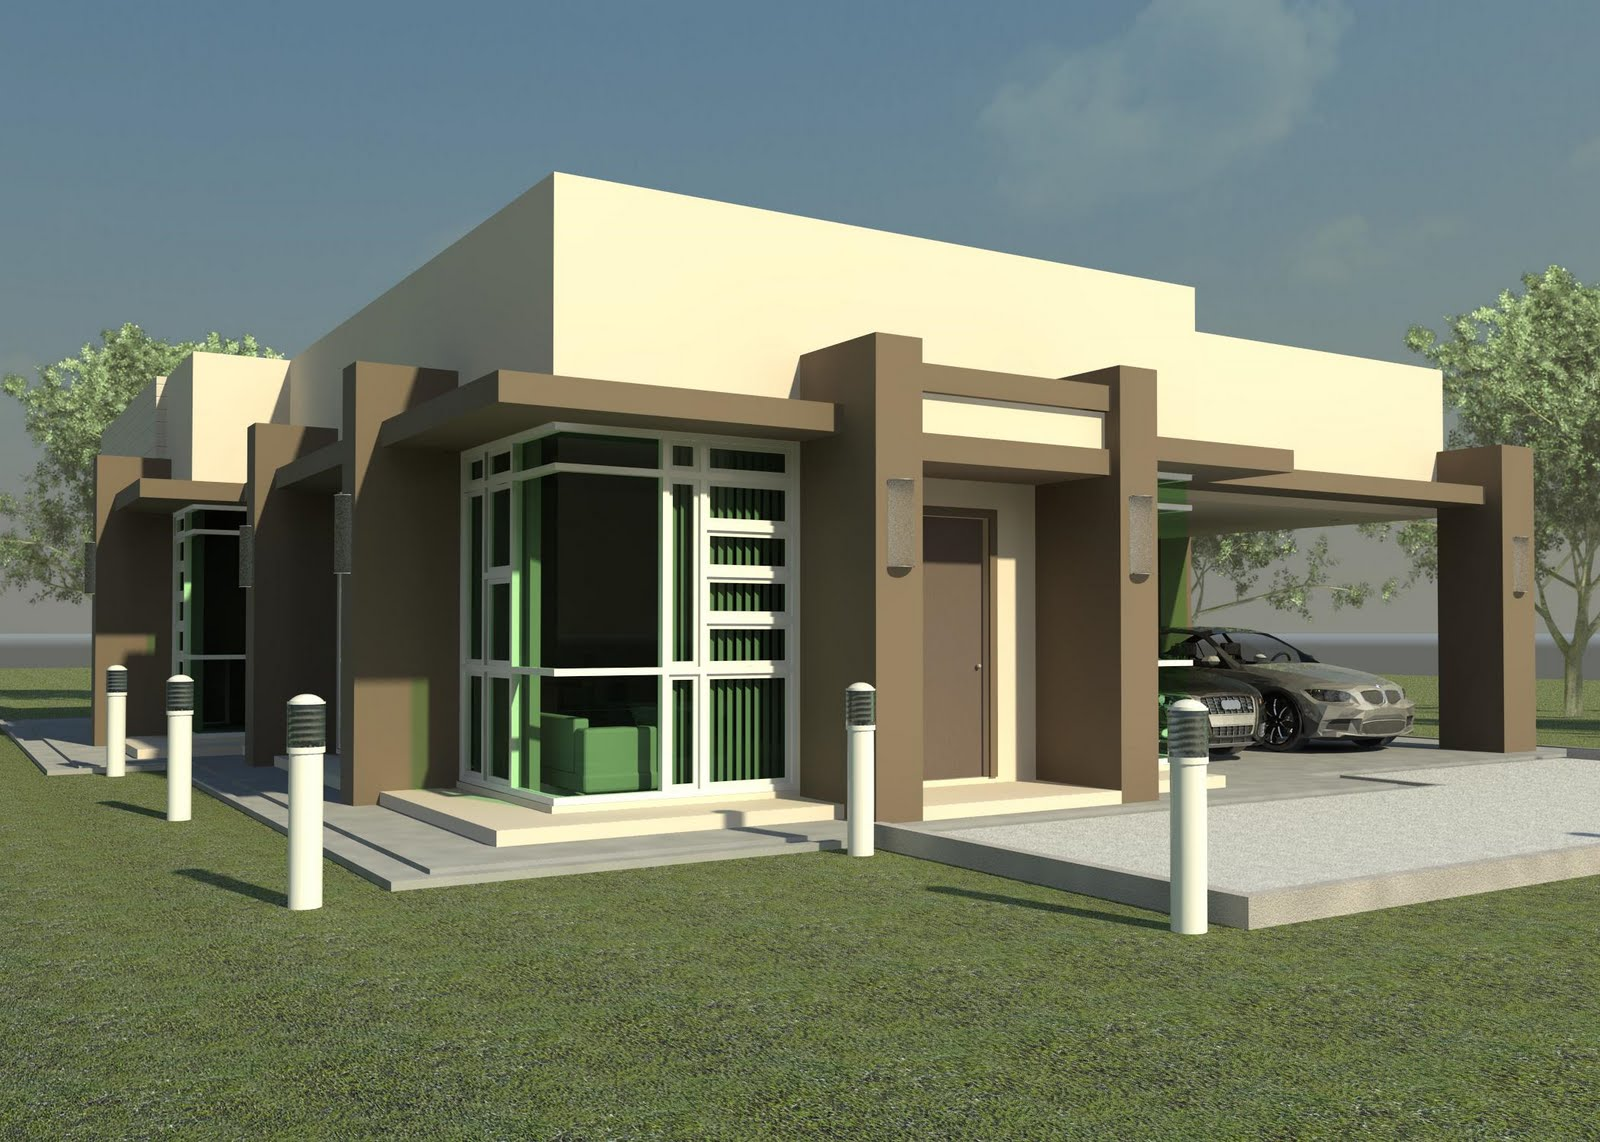 New home designs latest modern small homes designs exterior for Exterior design of small houses